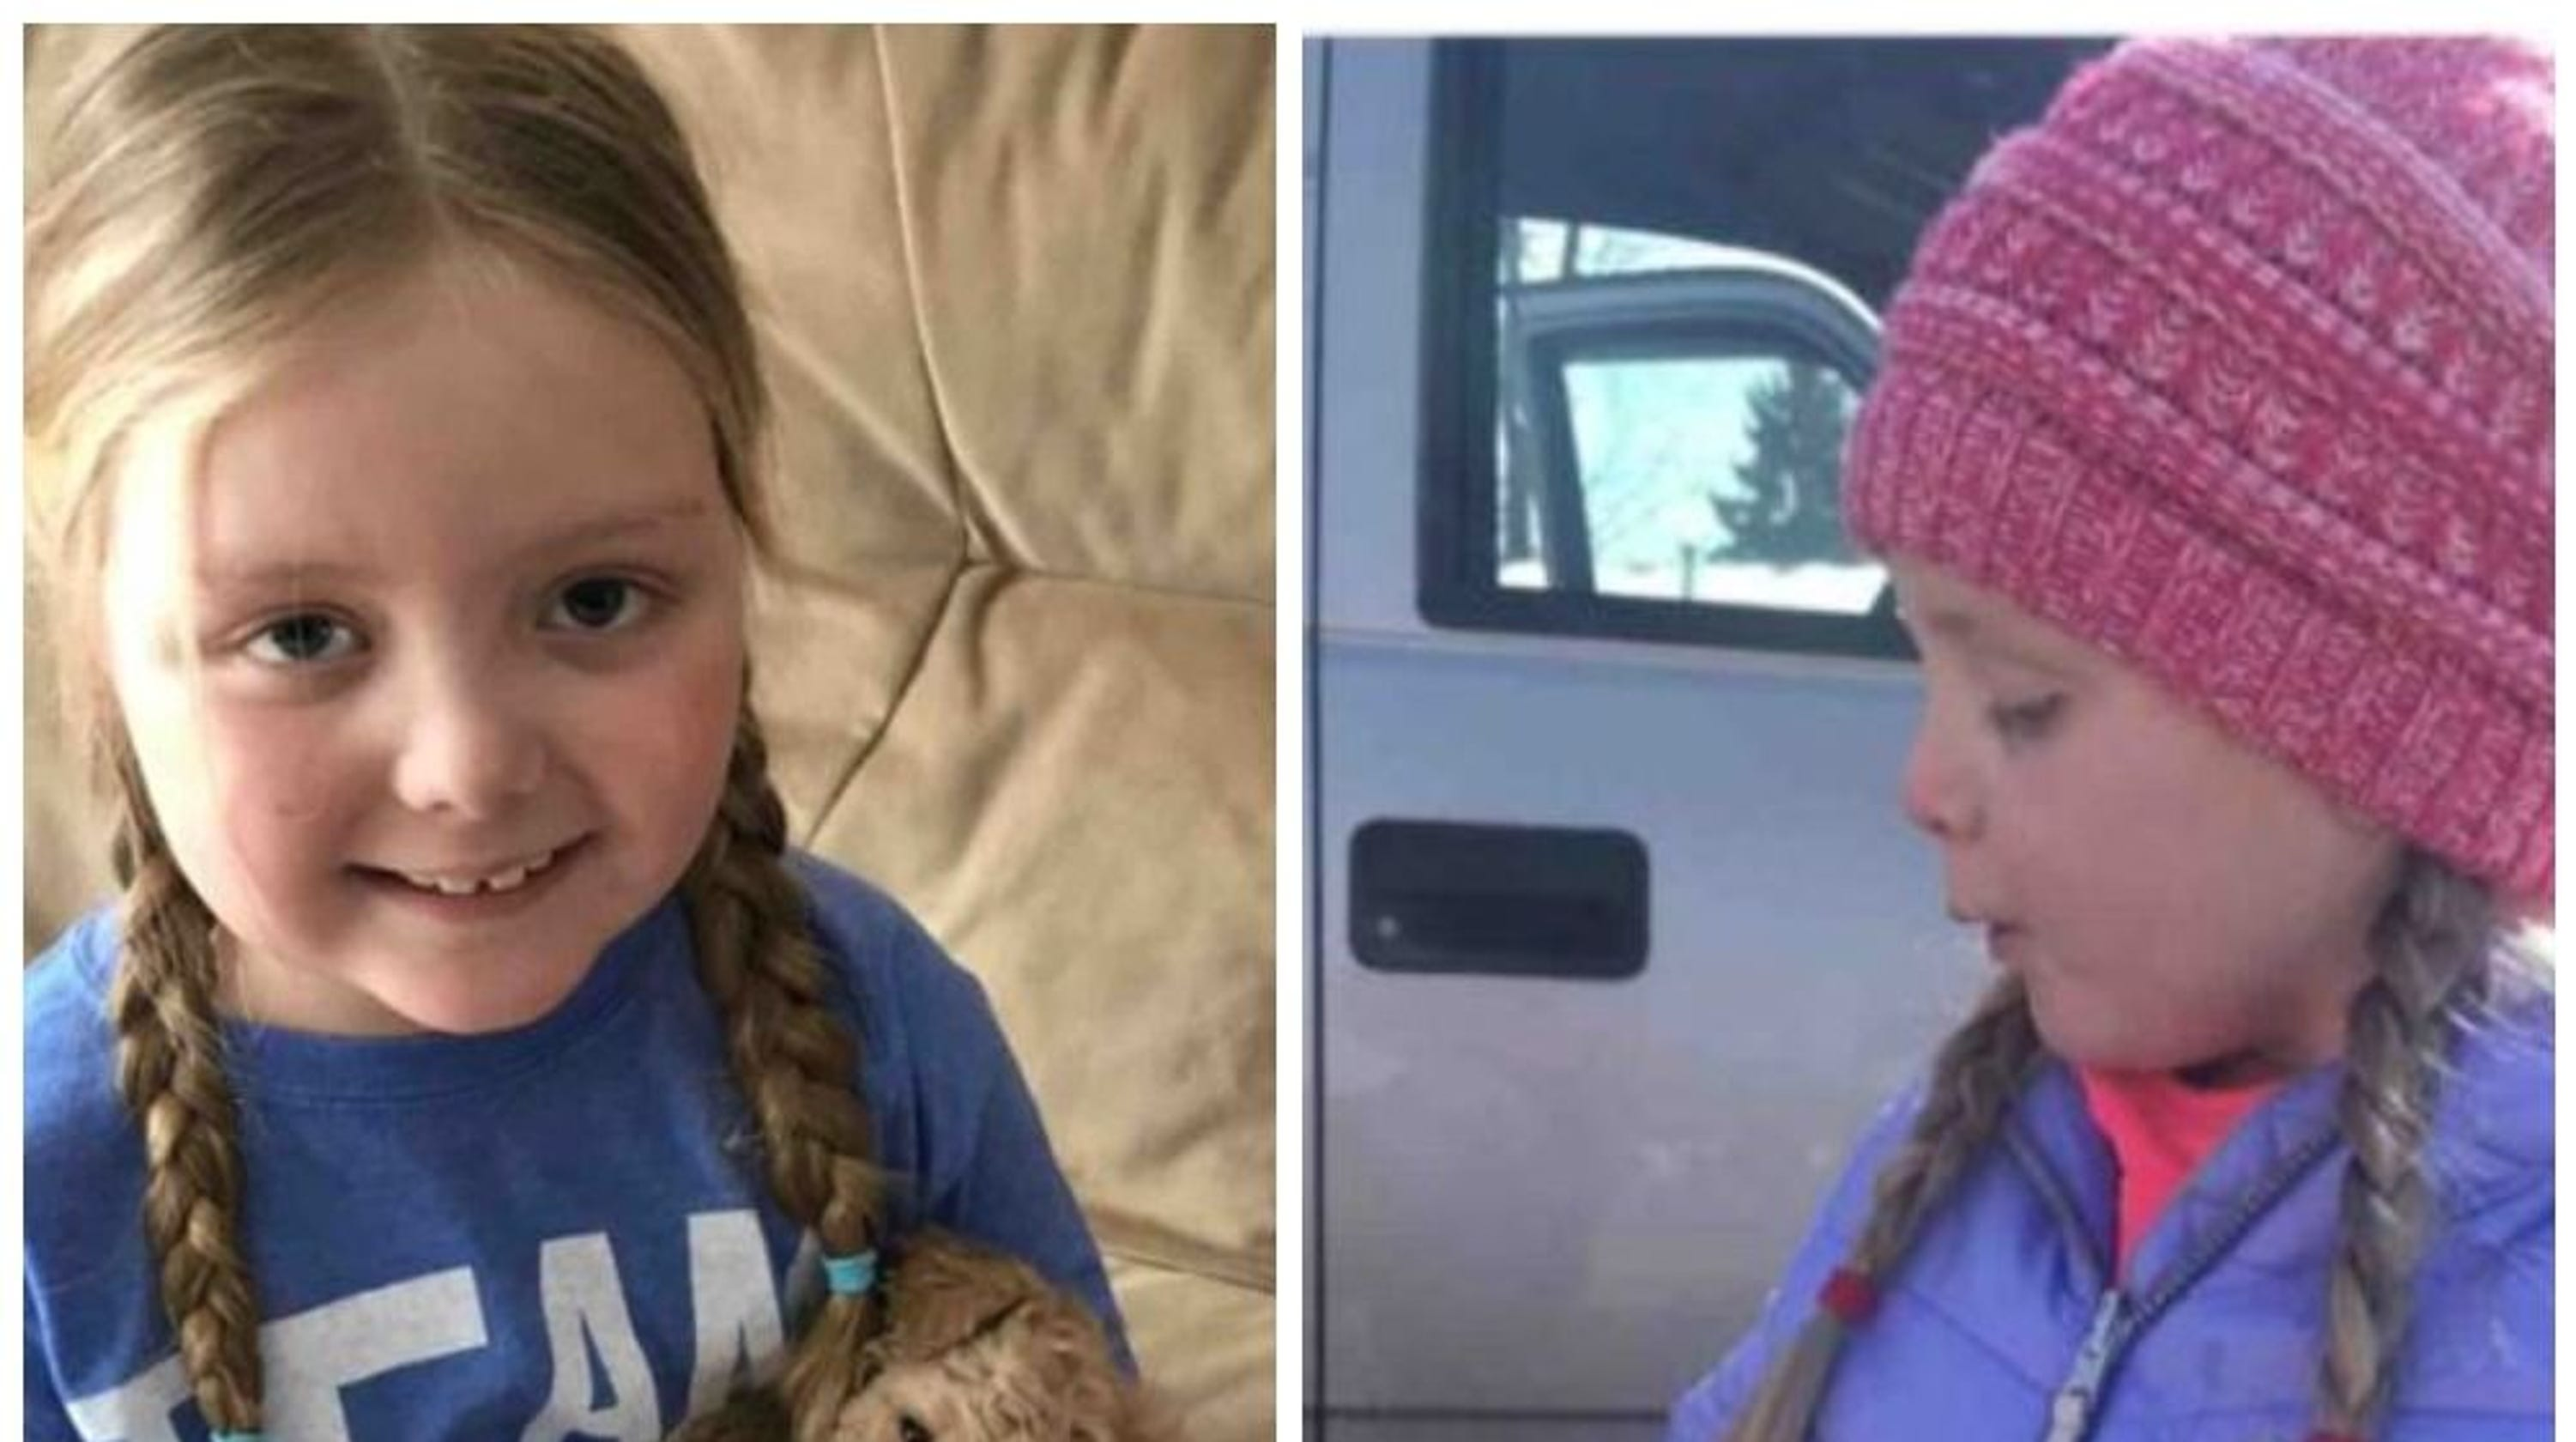 Girl with inoperable brain cancer has the sweetest wish: A letter from your dog